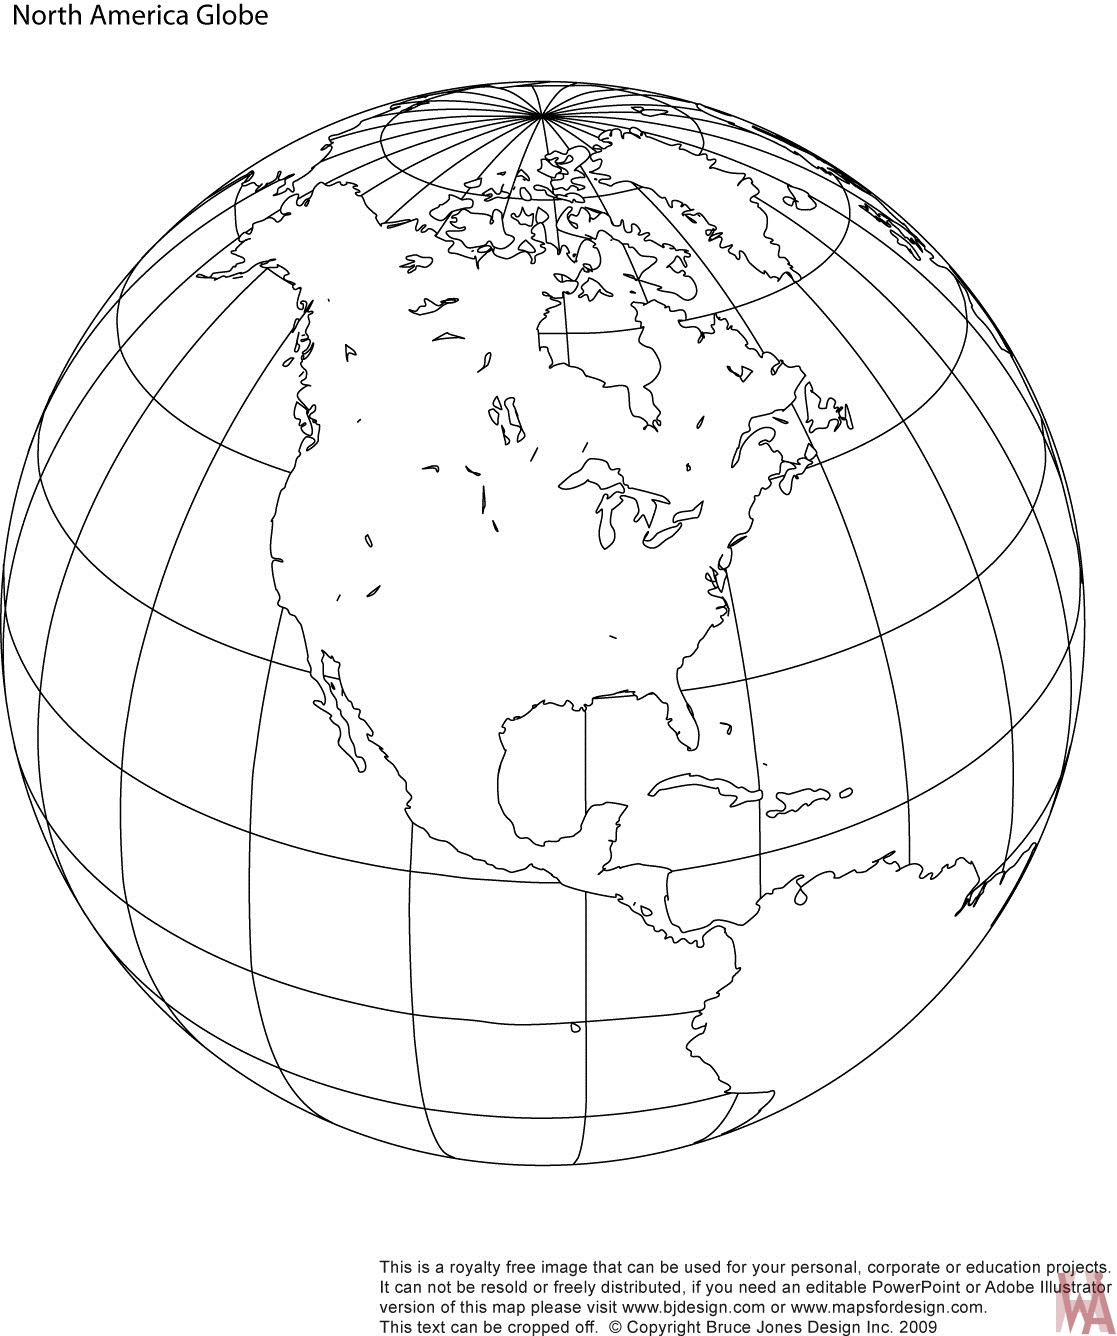 Blank outline globe map of North America | WhatsAnswer